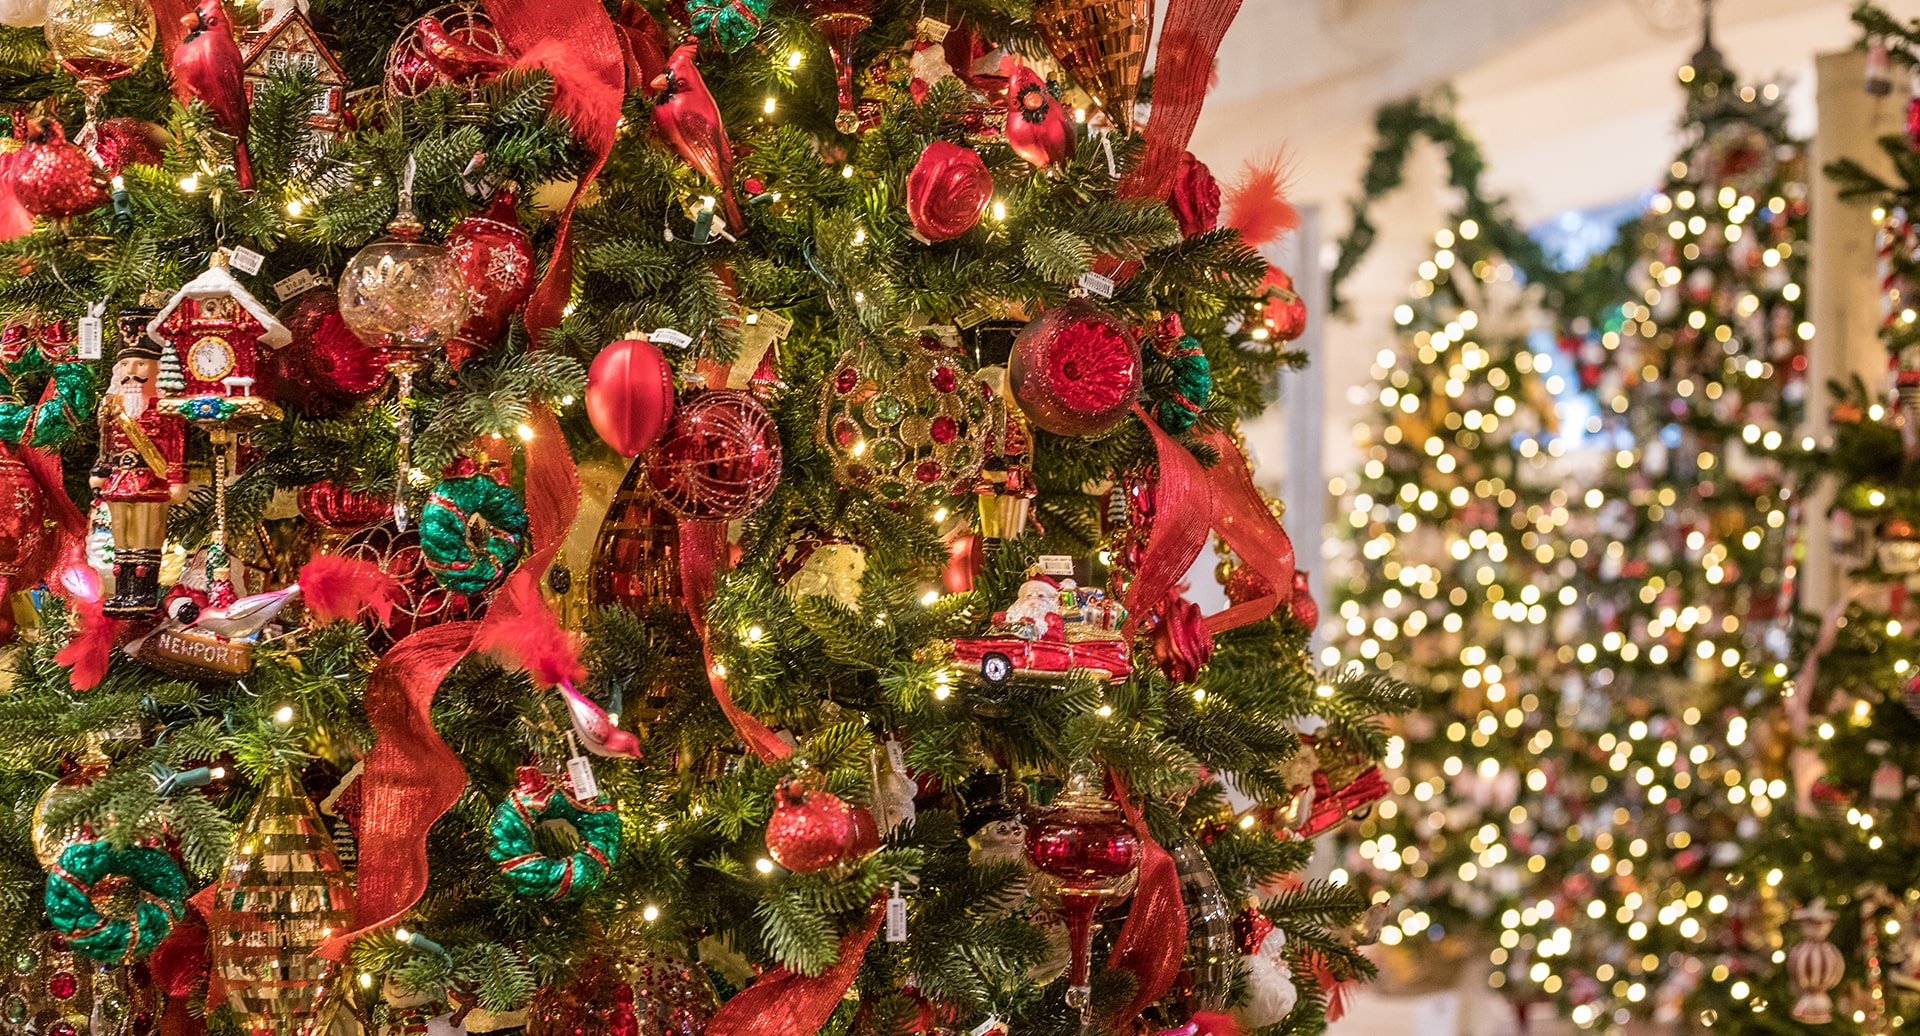 Visit the Roger's Gardens 'The Wonder of Christmas' Boutique